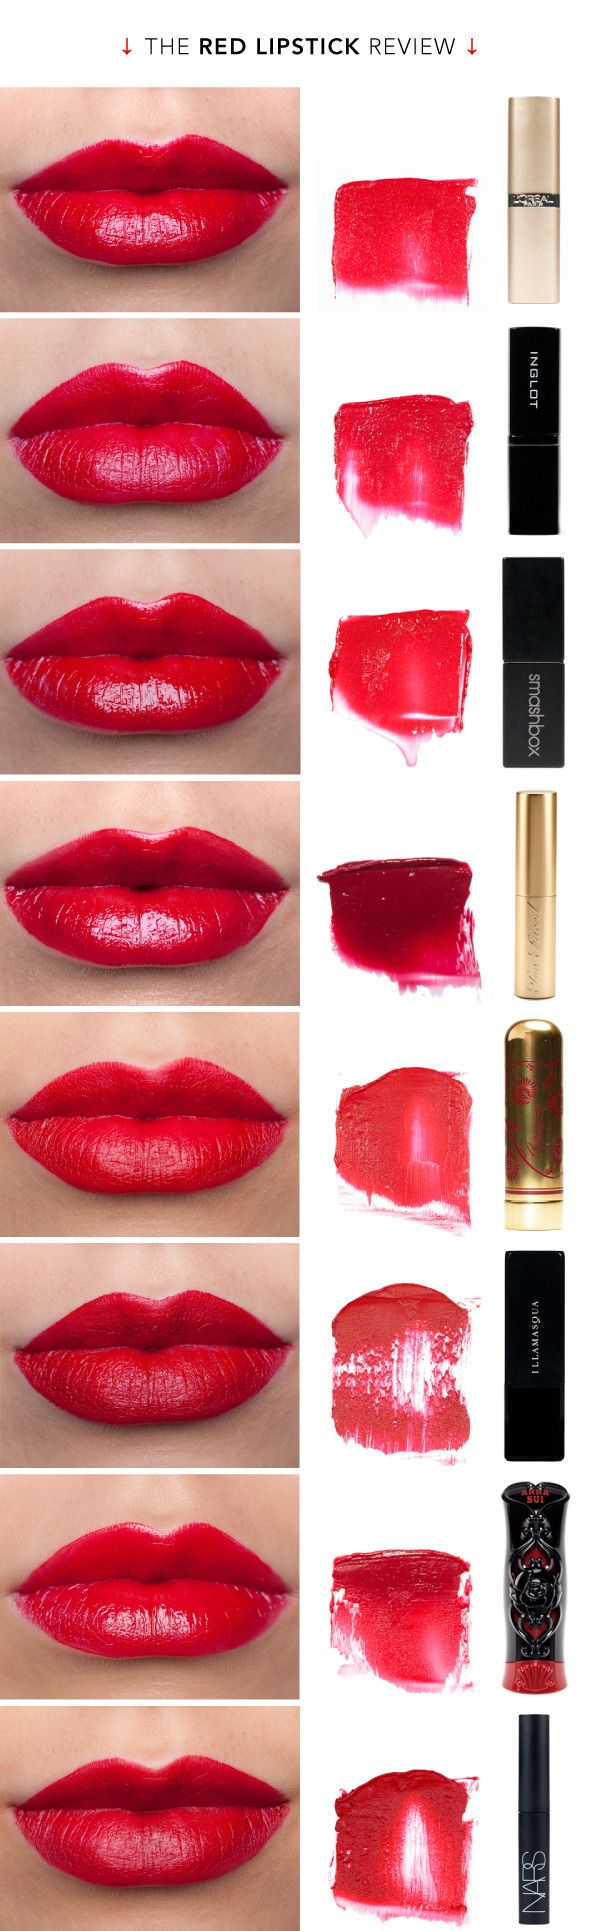 The Red Lipstick Review Best Red Lipstick Red Lipsticks Lipstick Review